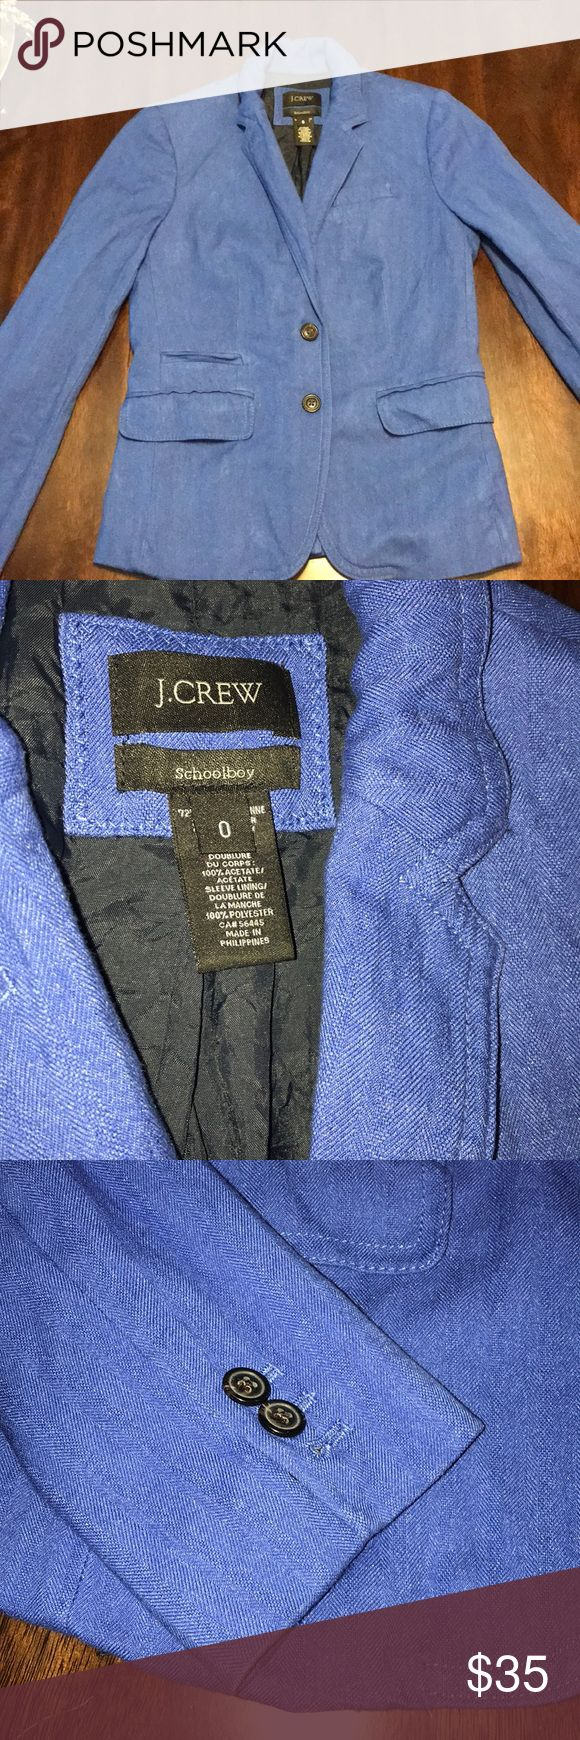 J. Crew Schoolboy Blazer. J. Crew Schoolboy Blazer.  Gently worn. Excellent condition. Small unthreading on the inside of the fabric but an easy fix. (see picture above) Size: 0 Make an offer! J. Crew Jackets & Coats Blazers